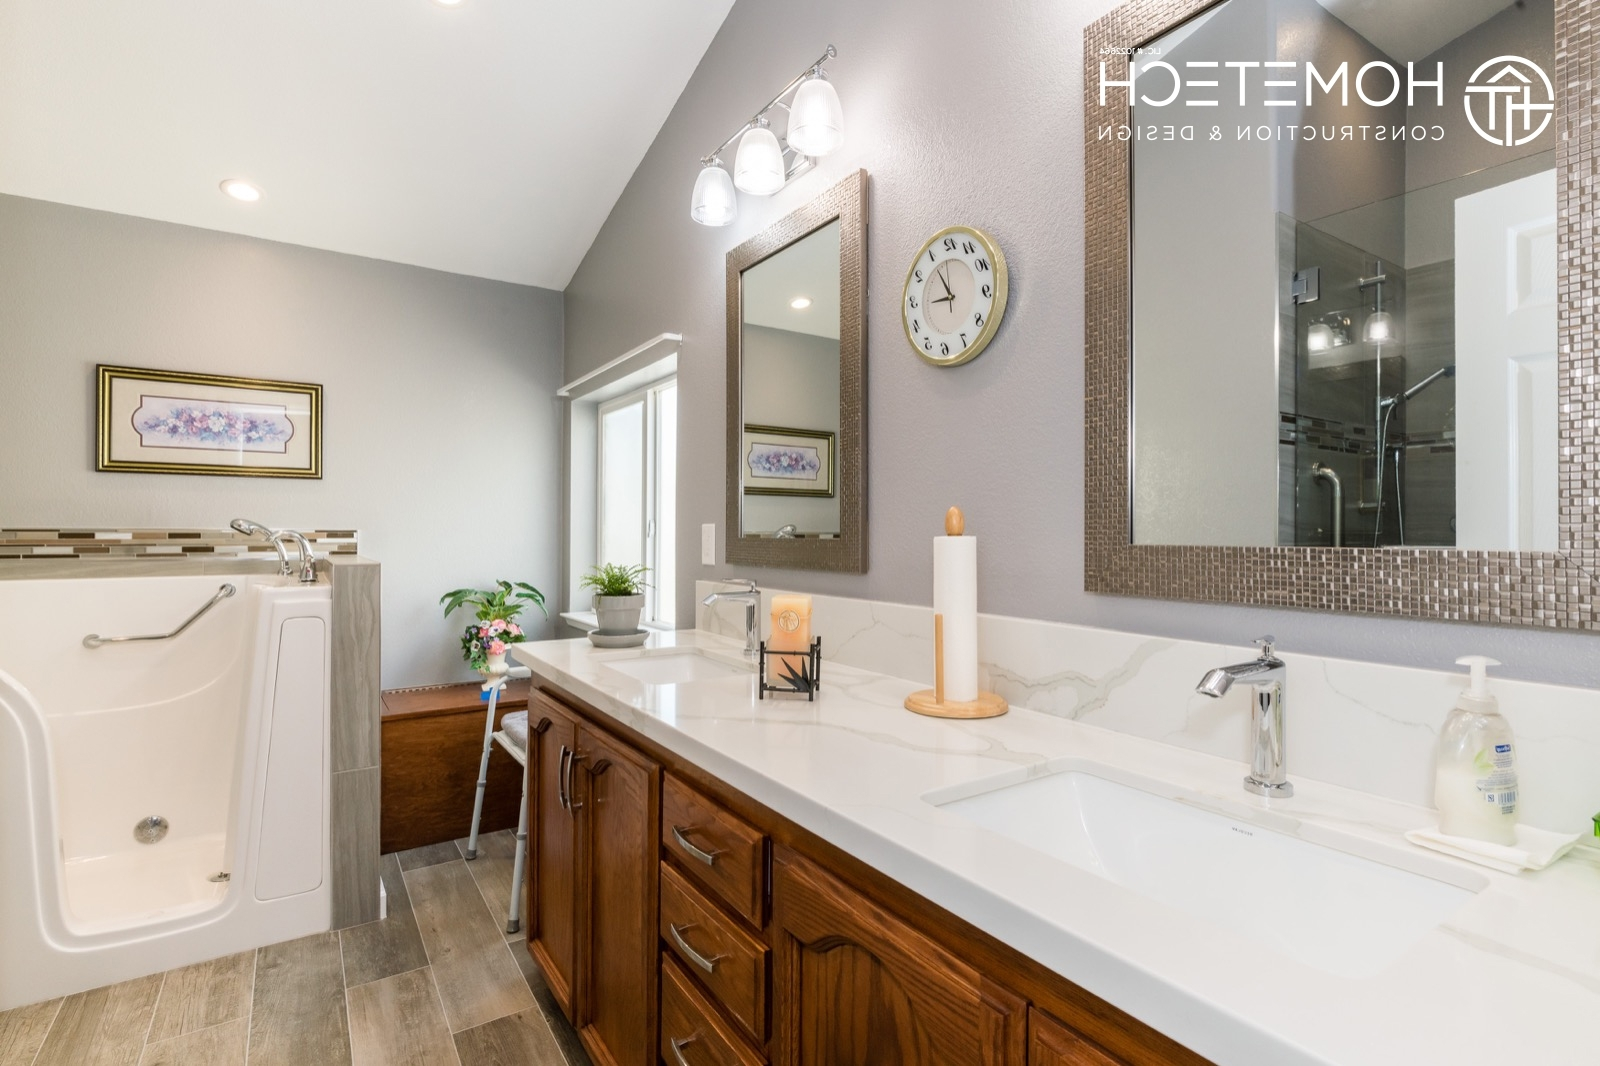 Before & After: Gorgeous Mobile Home Bathroom Remodel 40+ Mobile Home Bathroom Renovation Ideas